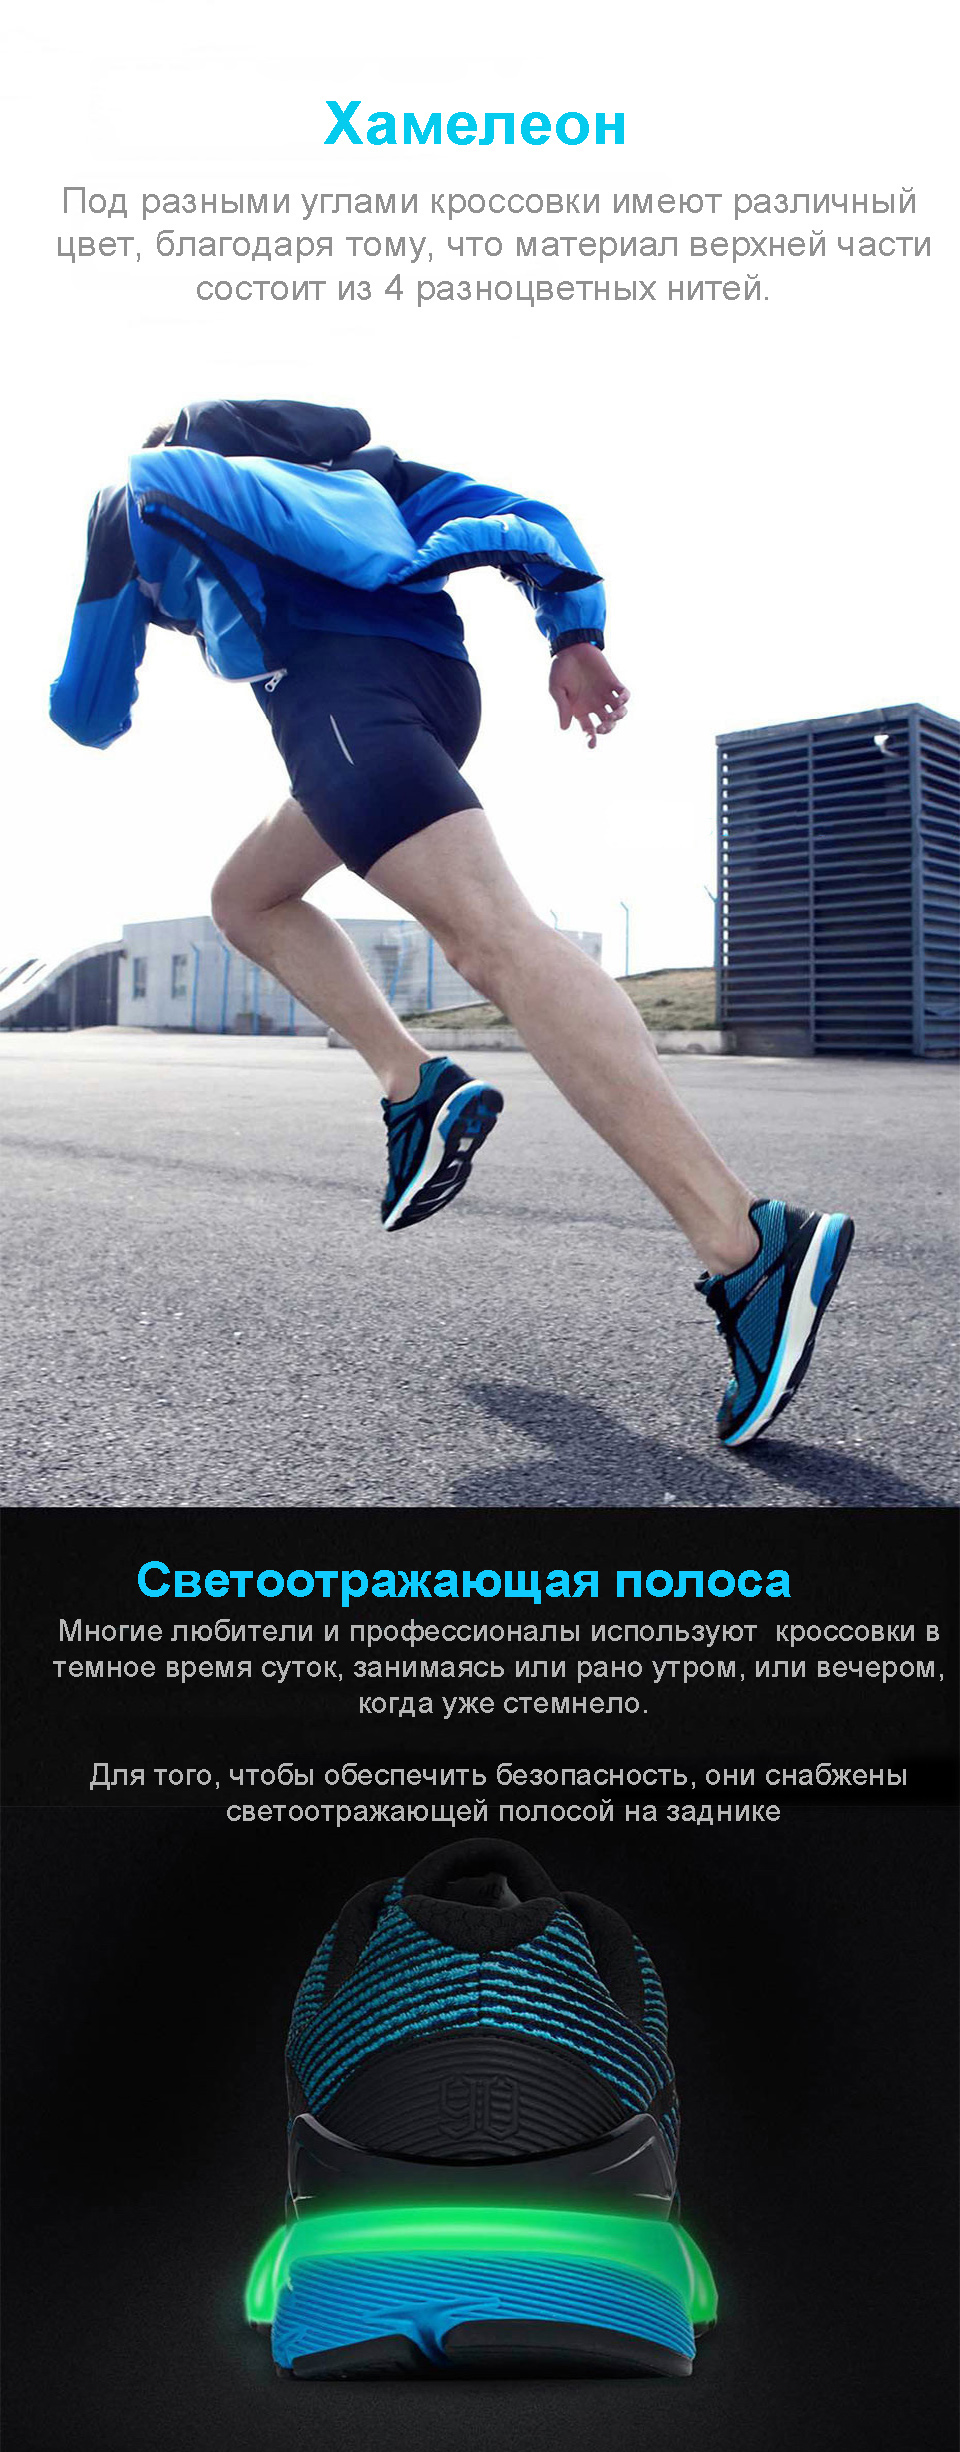 Кроссовки 90 Points Ultra Smart Running Shoes хамелеон, светоотражающяя полоса